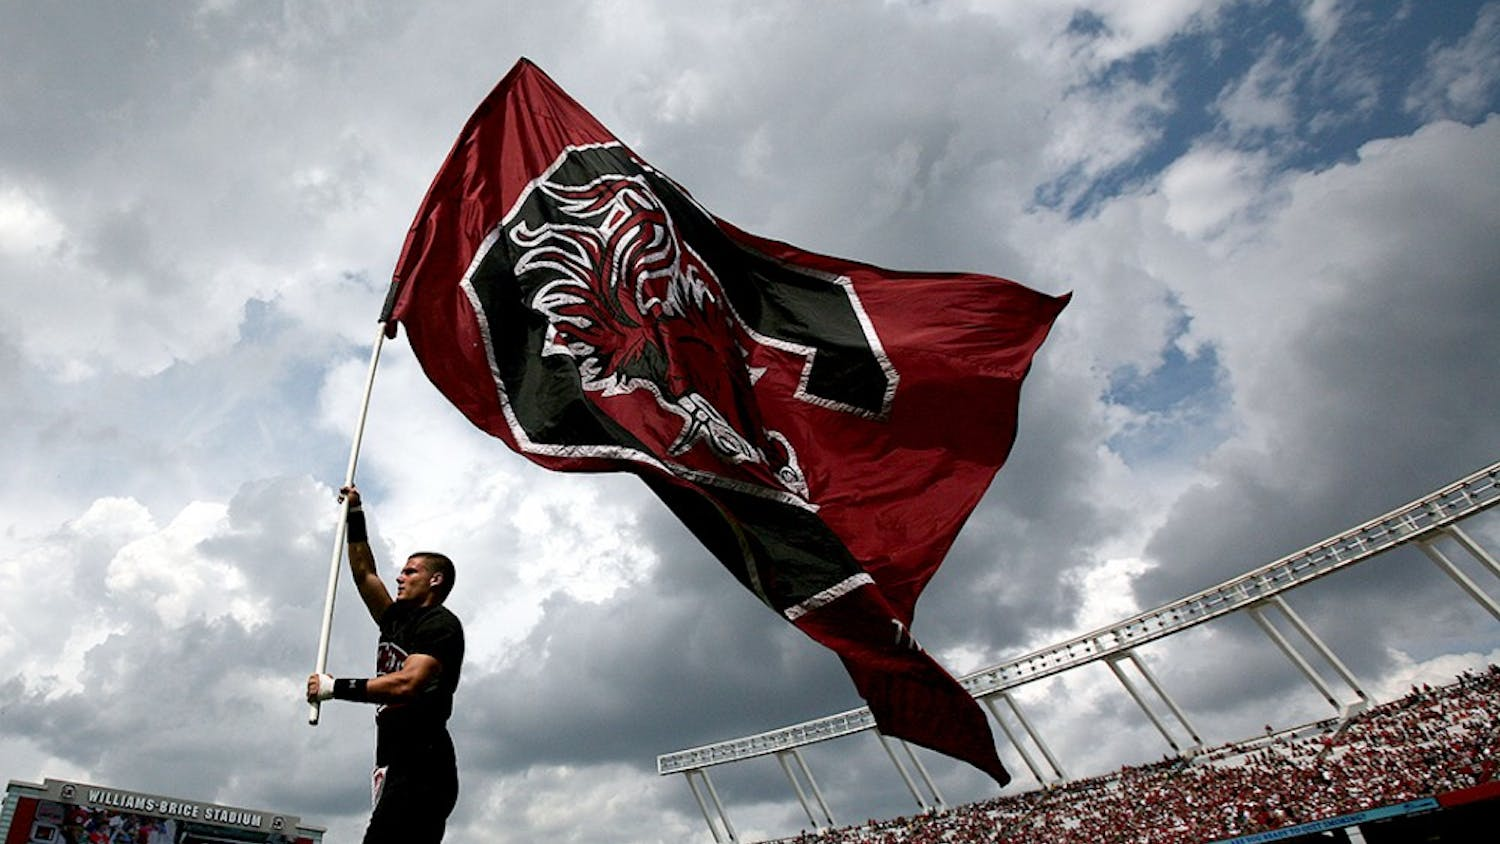 The University of South Carolina flag flies high after the Gamecocks scored against East Carolina in the third quarter at William-Brice Stadium in Columbia, South Carolina, Saturday, September 8, 2012. South Carolina defeated ECU, 48-10. (C. Aluka Berry/The State/MCT)